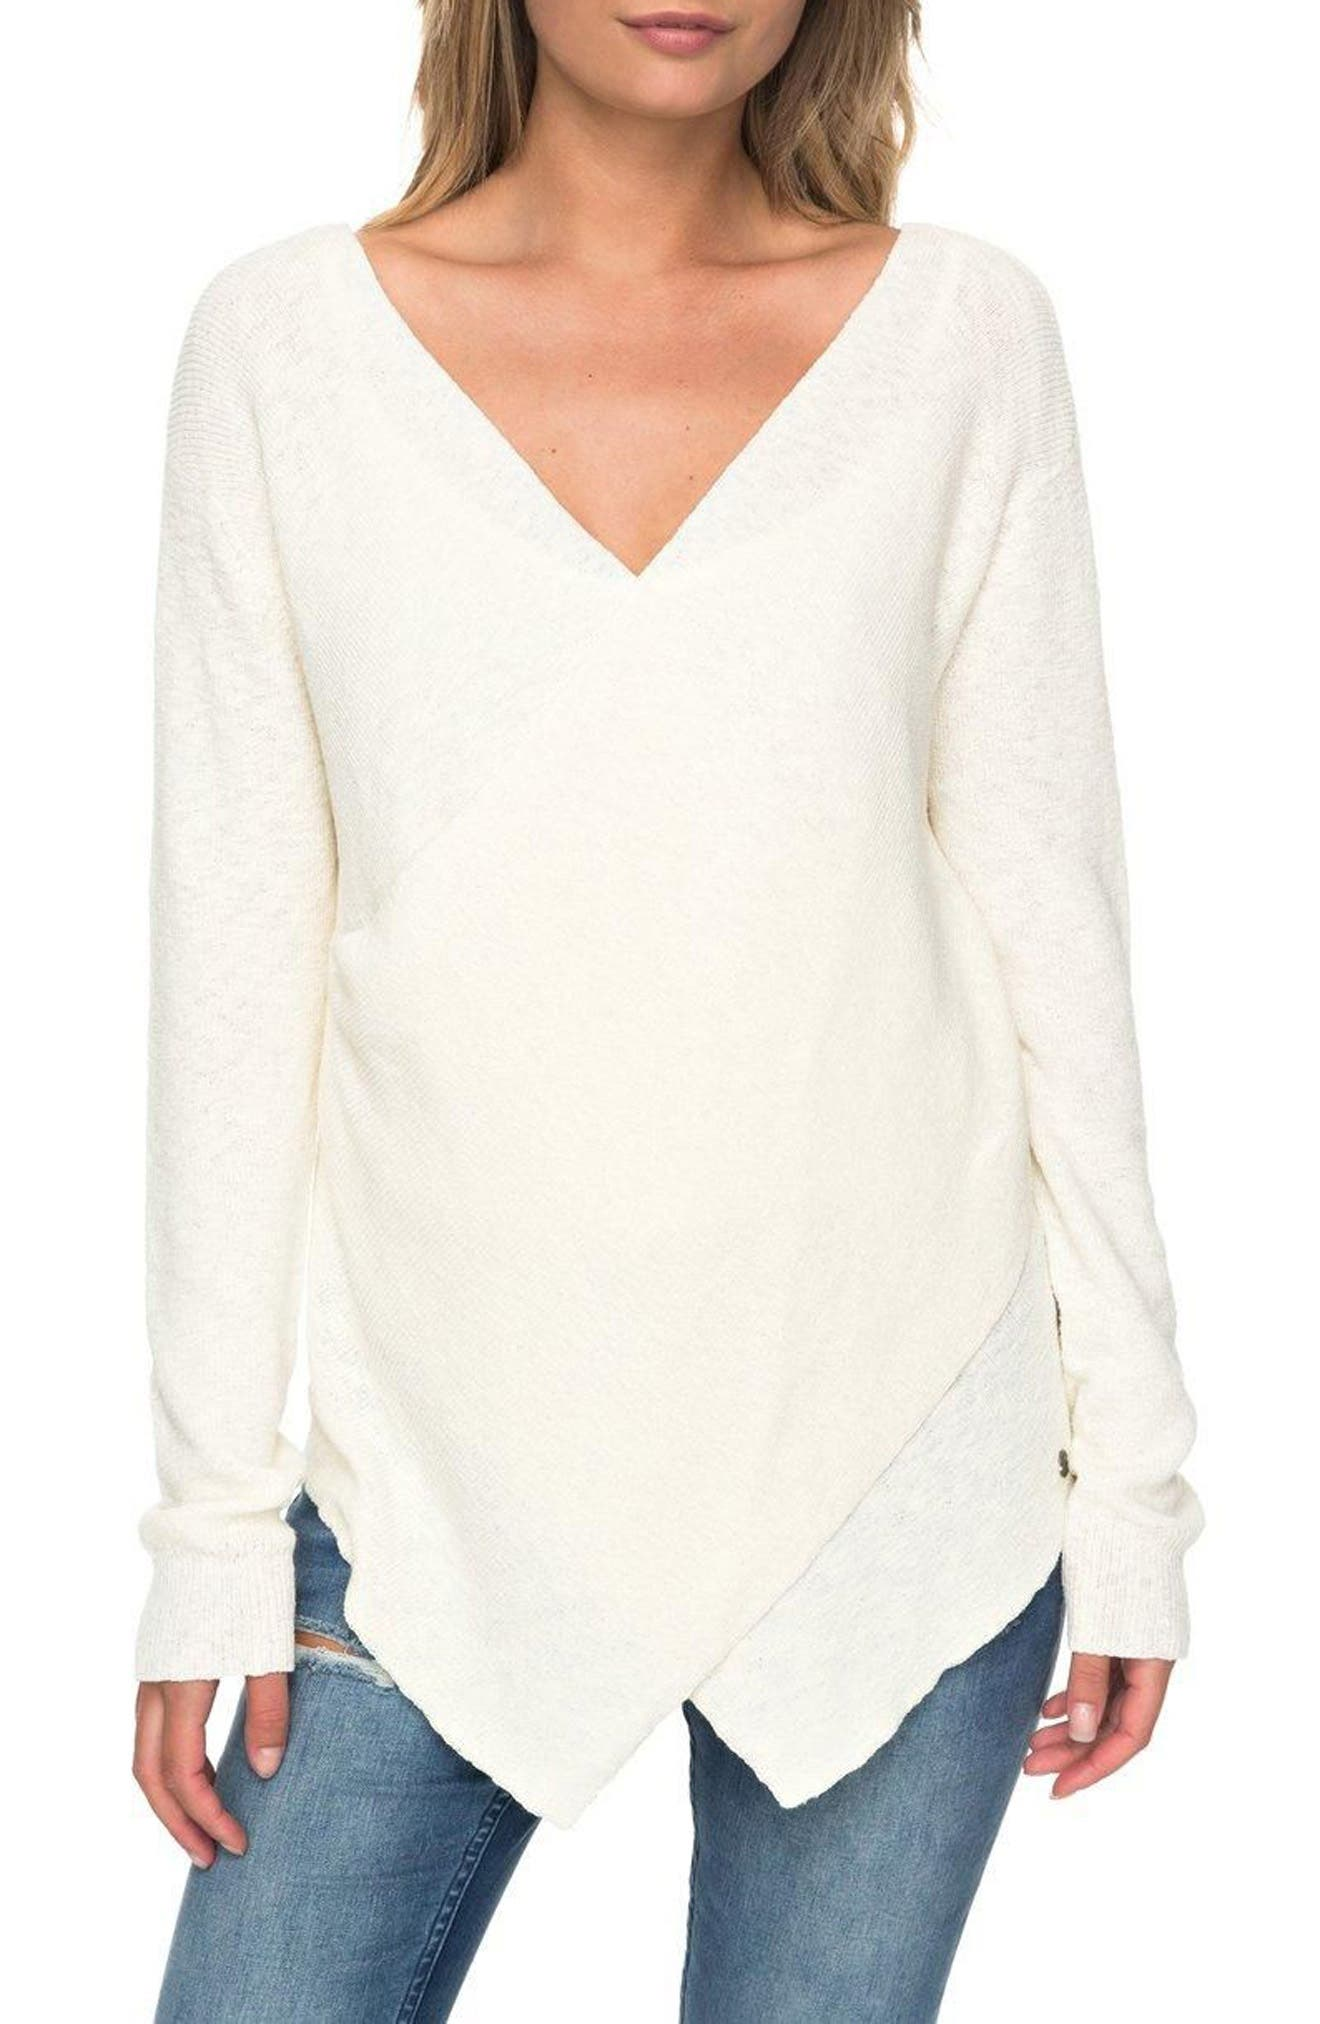 Main Image - Roxy Love at First Light Sweater